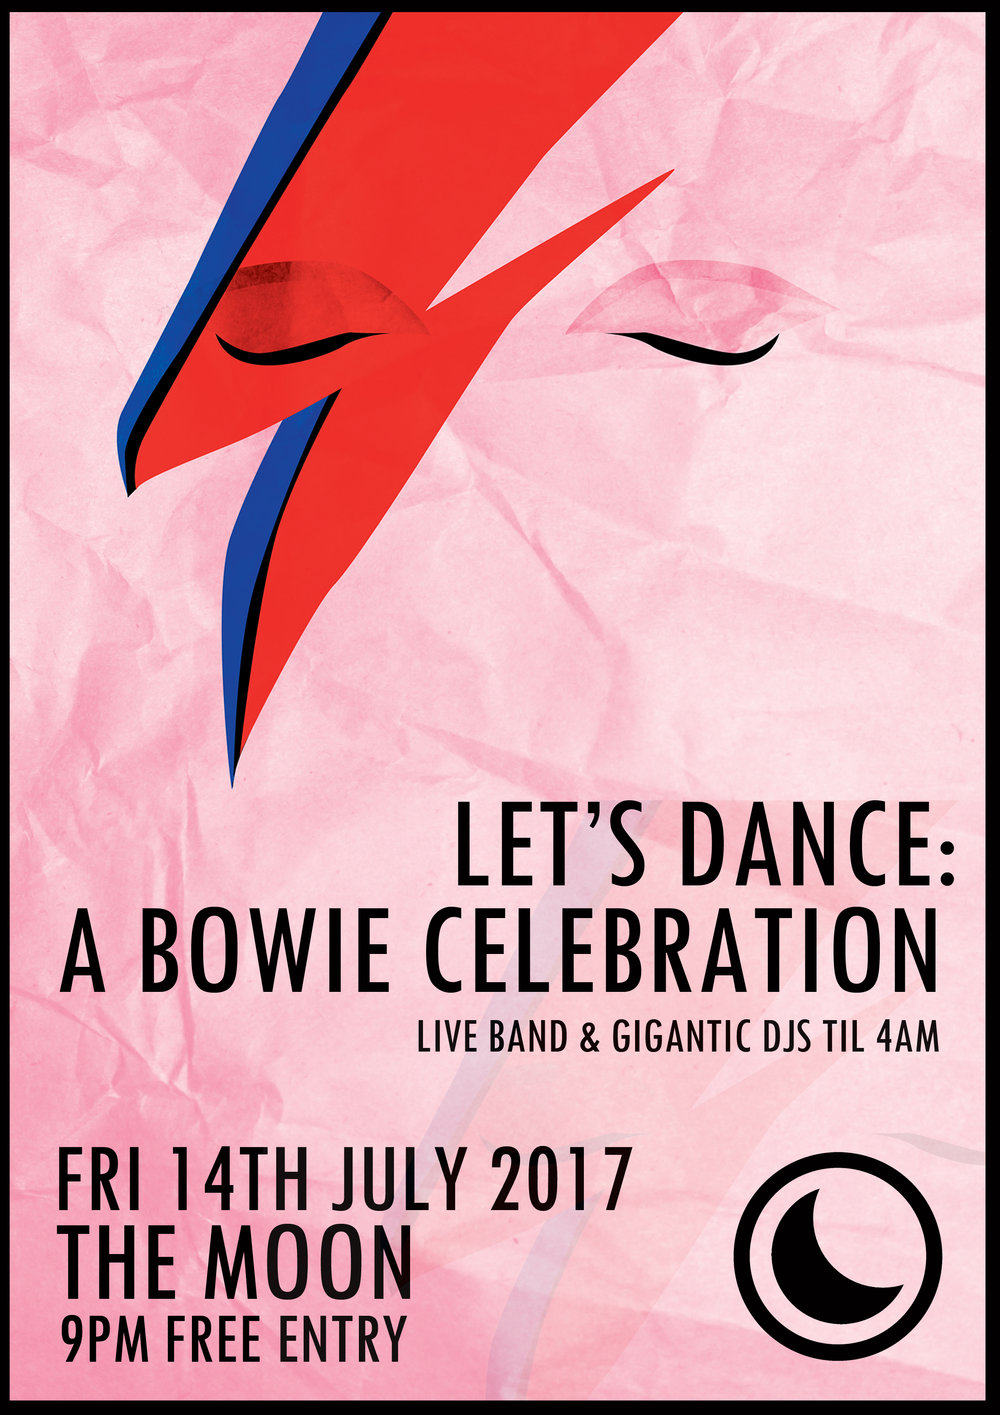 Let's Dance: A Bowie Celebration